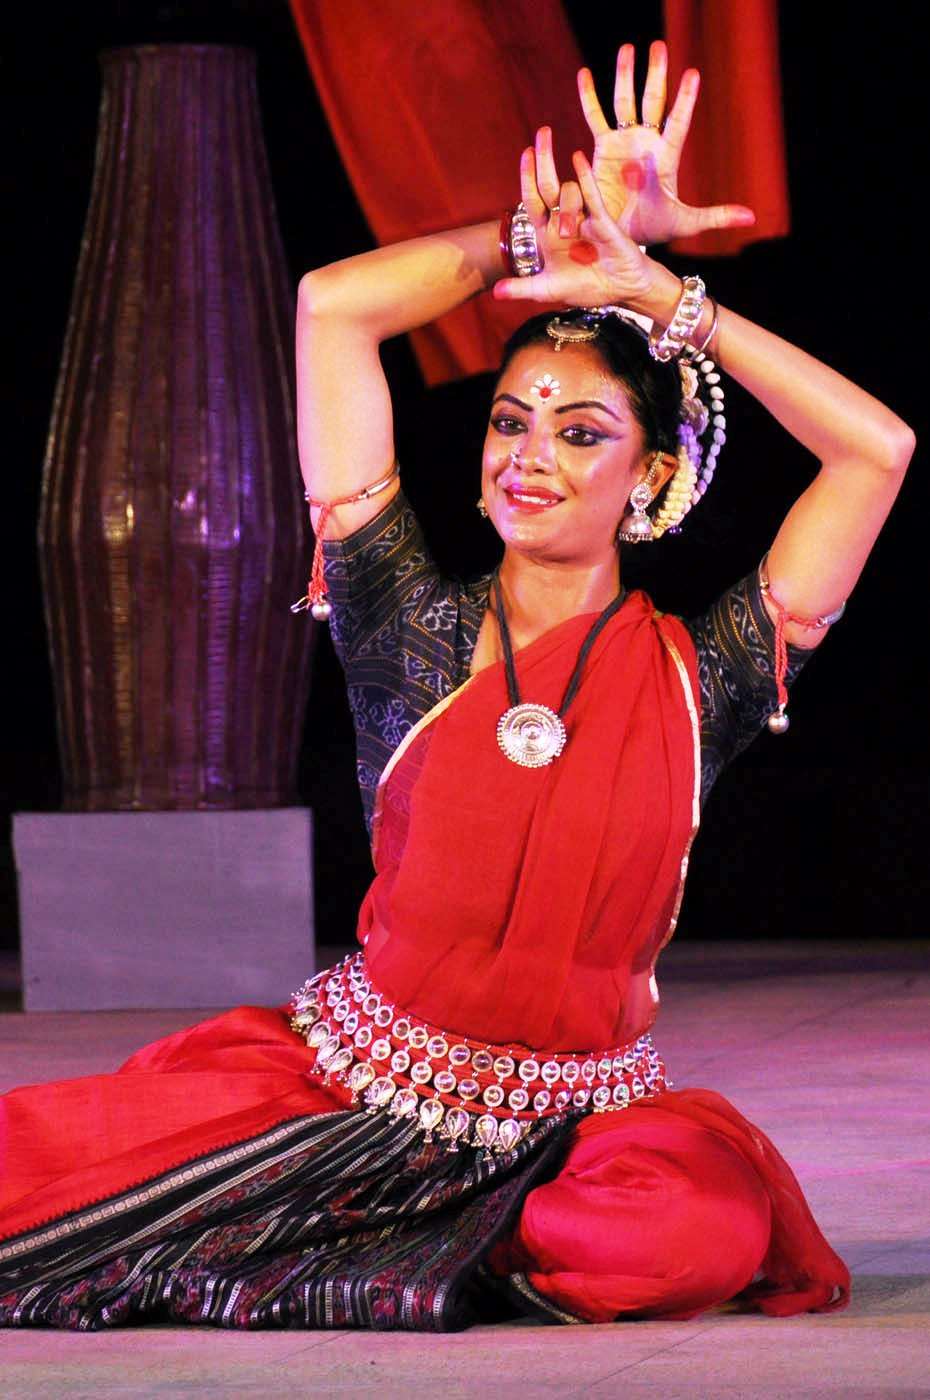 Odissi by Sashwati Garai Ghosh from Kolkata at 7th PRAGJYOTI INTERNATIONAL DANCE FESTIVAL GHY 3